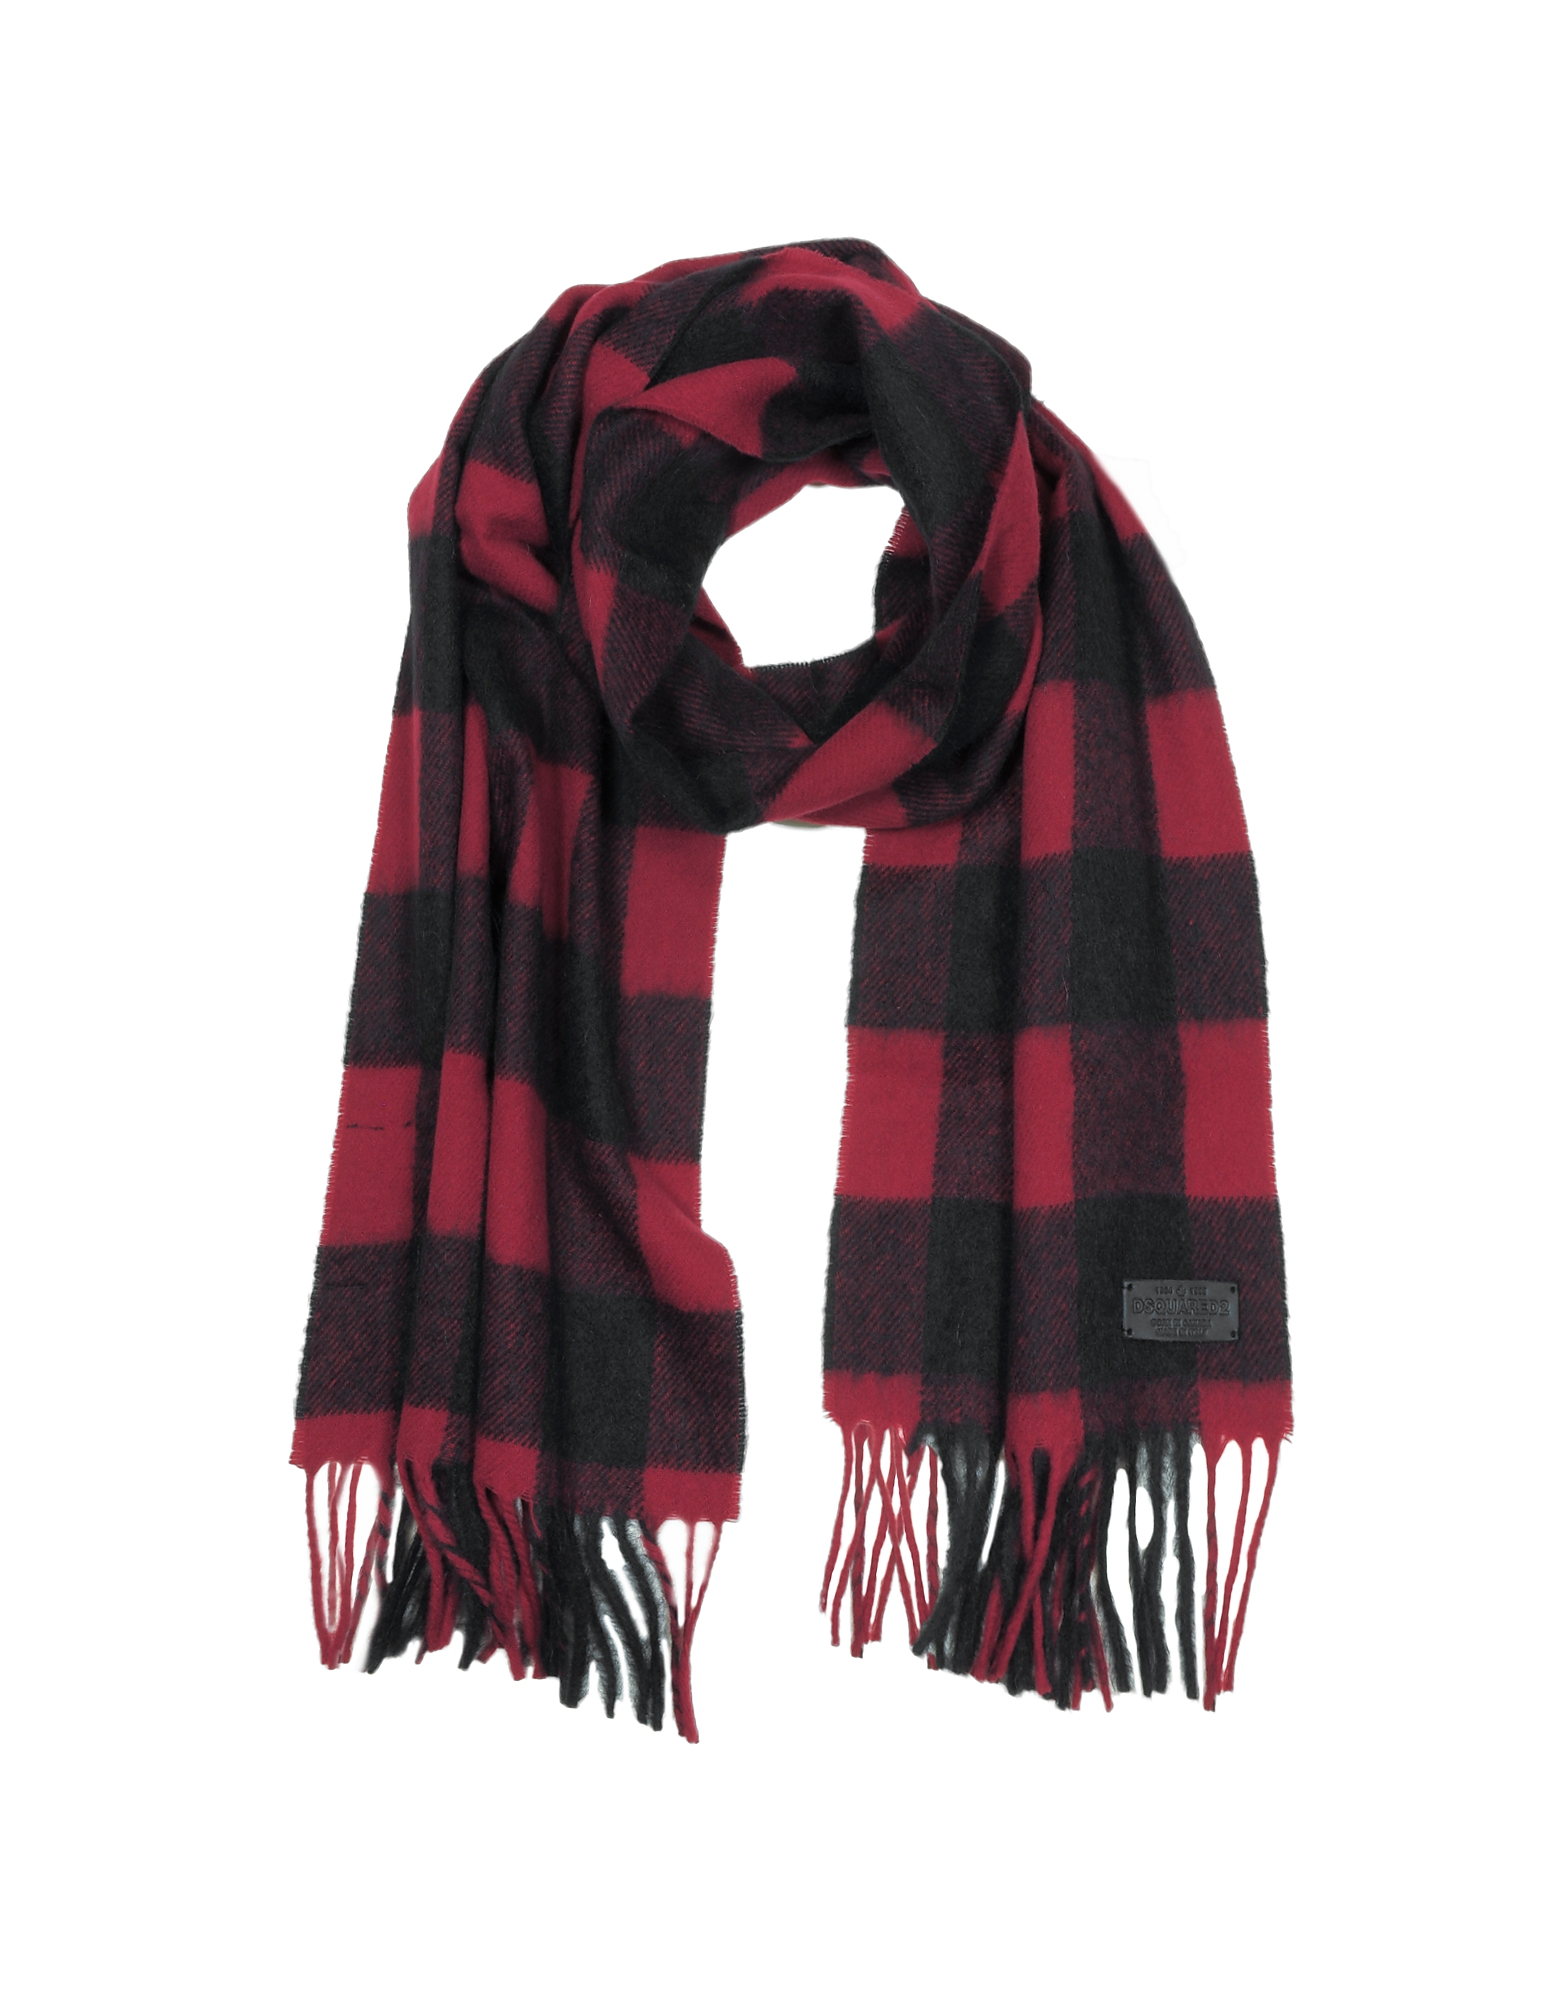 Black and Burgundy Checked Wool Blend Men's Scarf w/Fringes от Forzieri.com INT